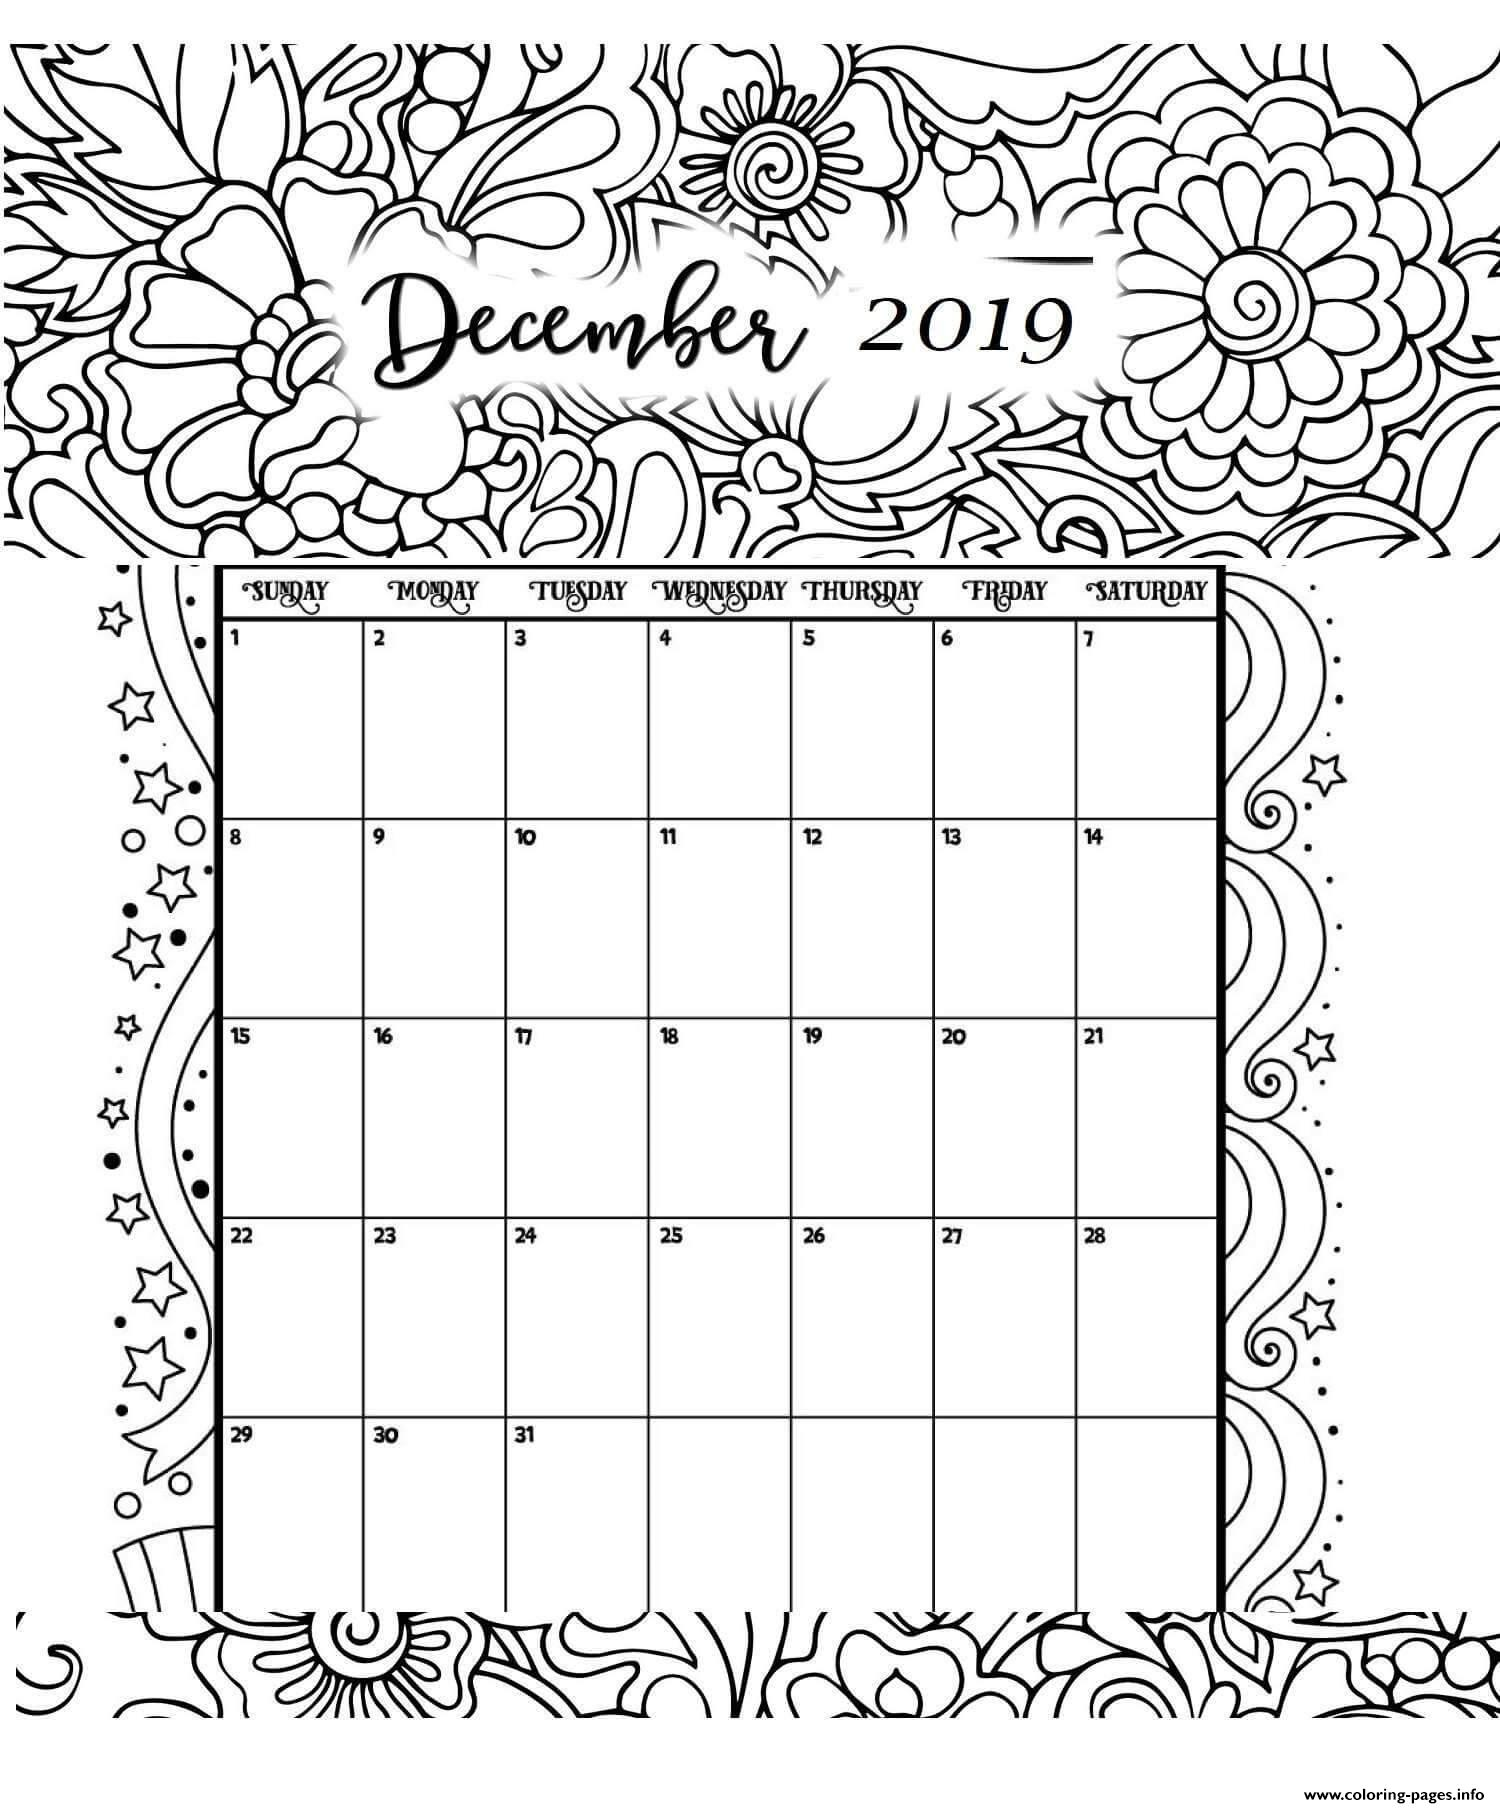 December Calendar 2019 Coloring Pages Printable